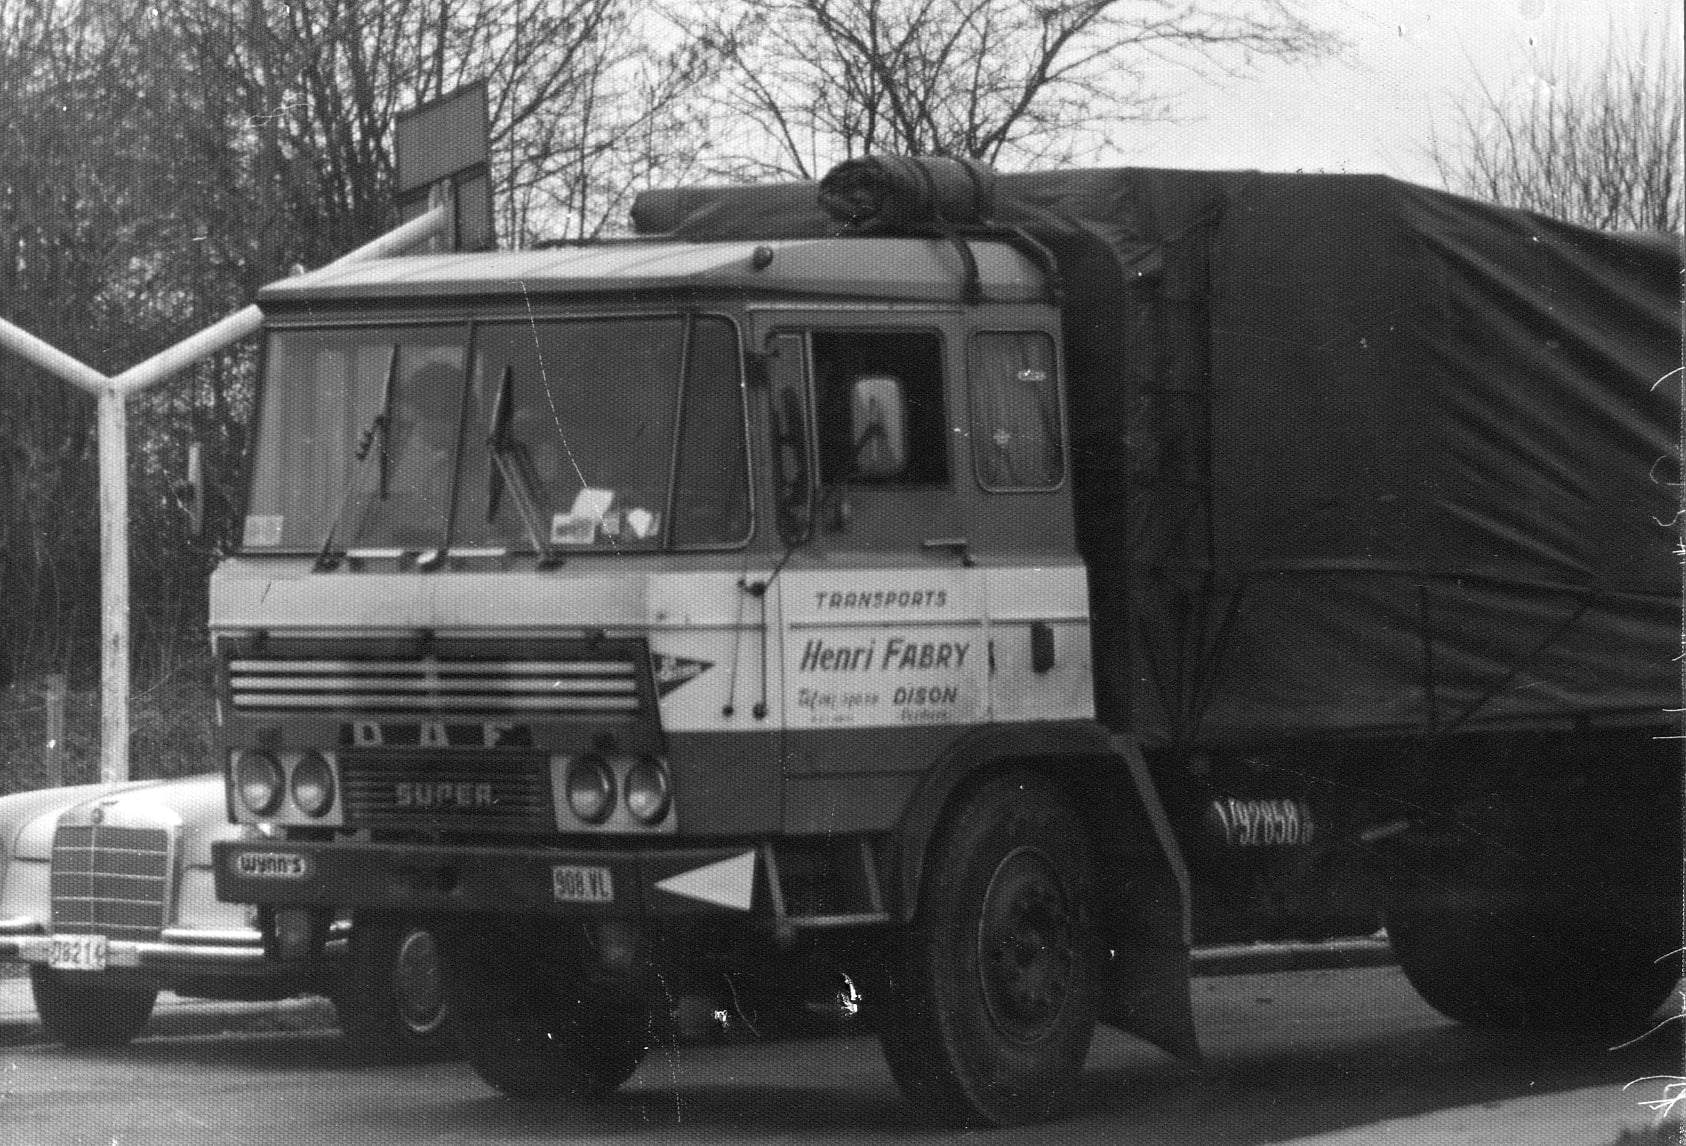 DAF-2600-Eric-Fabry-photo